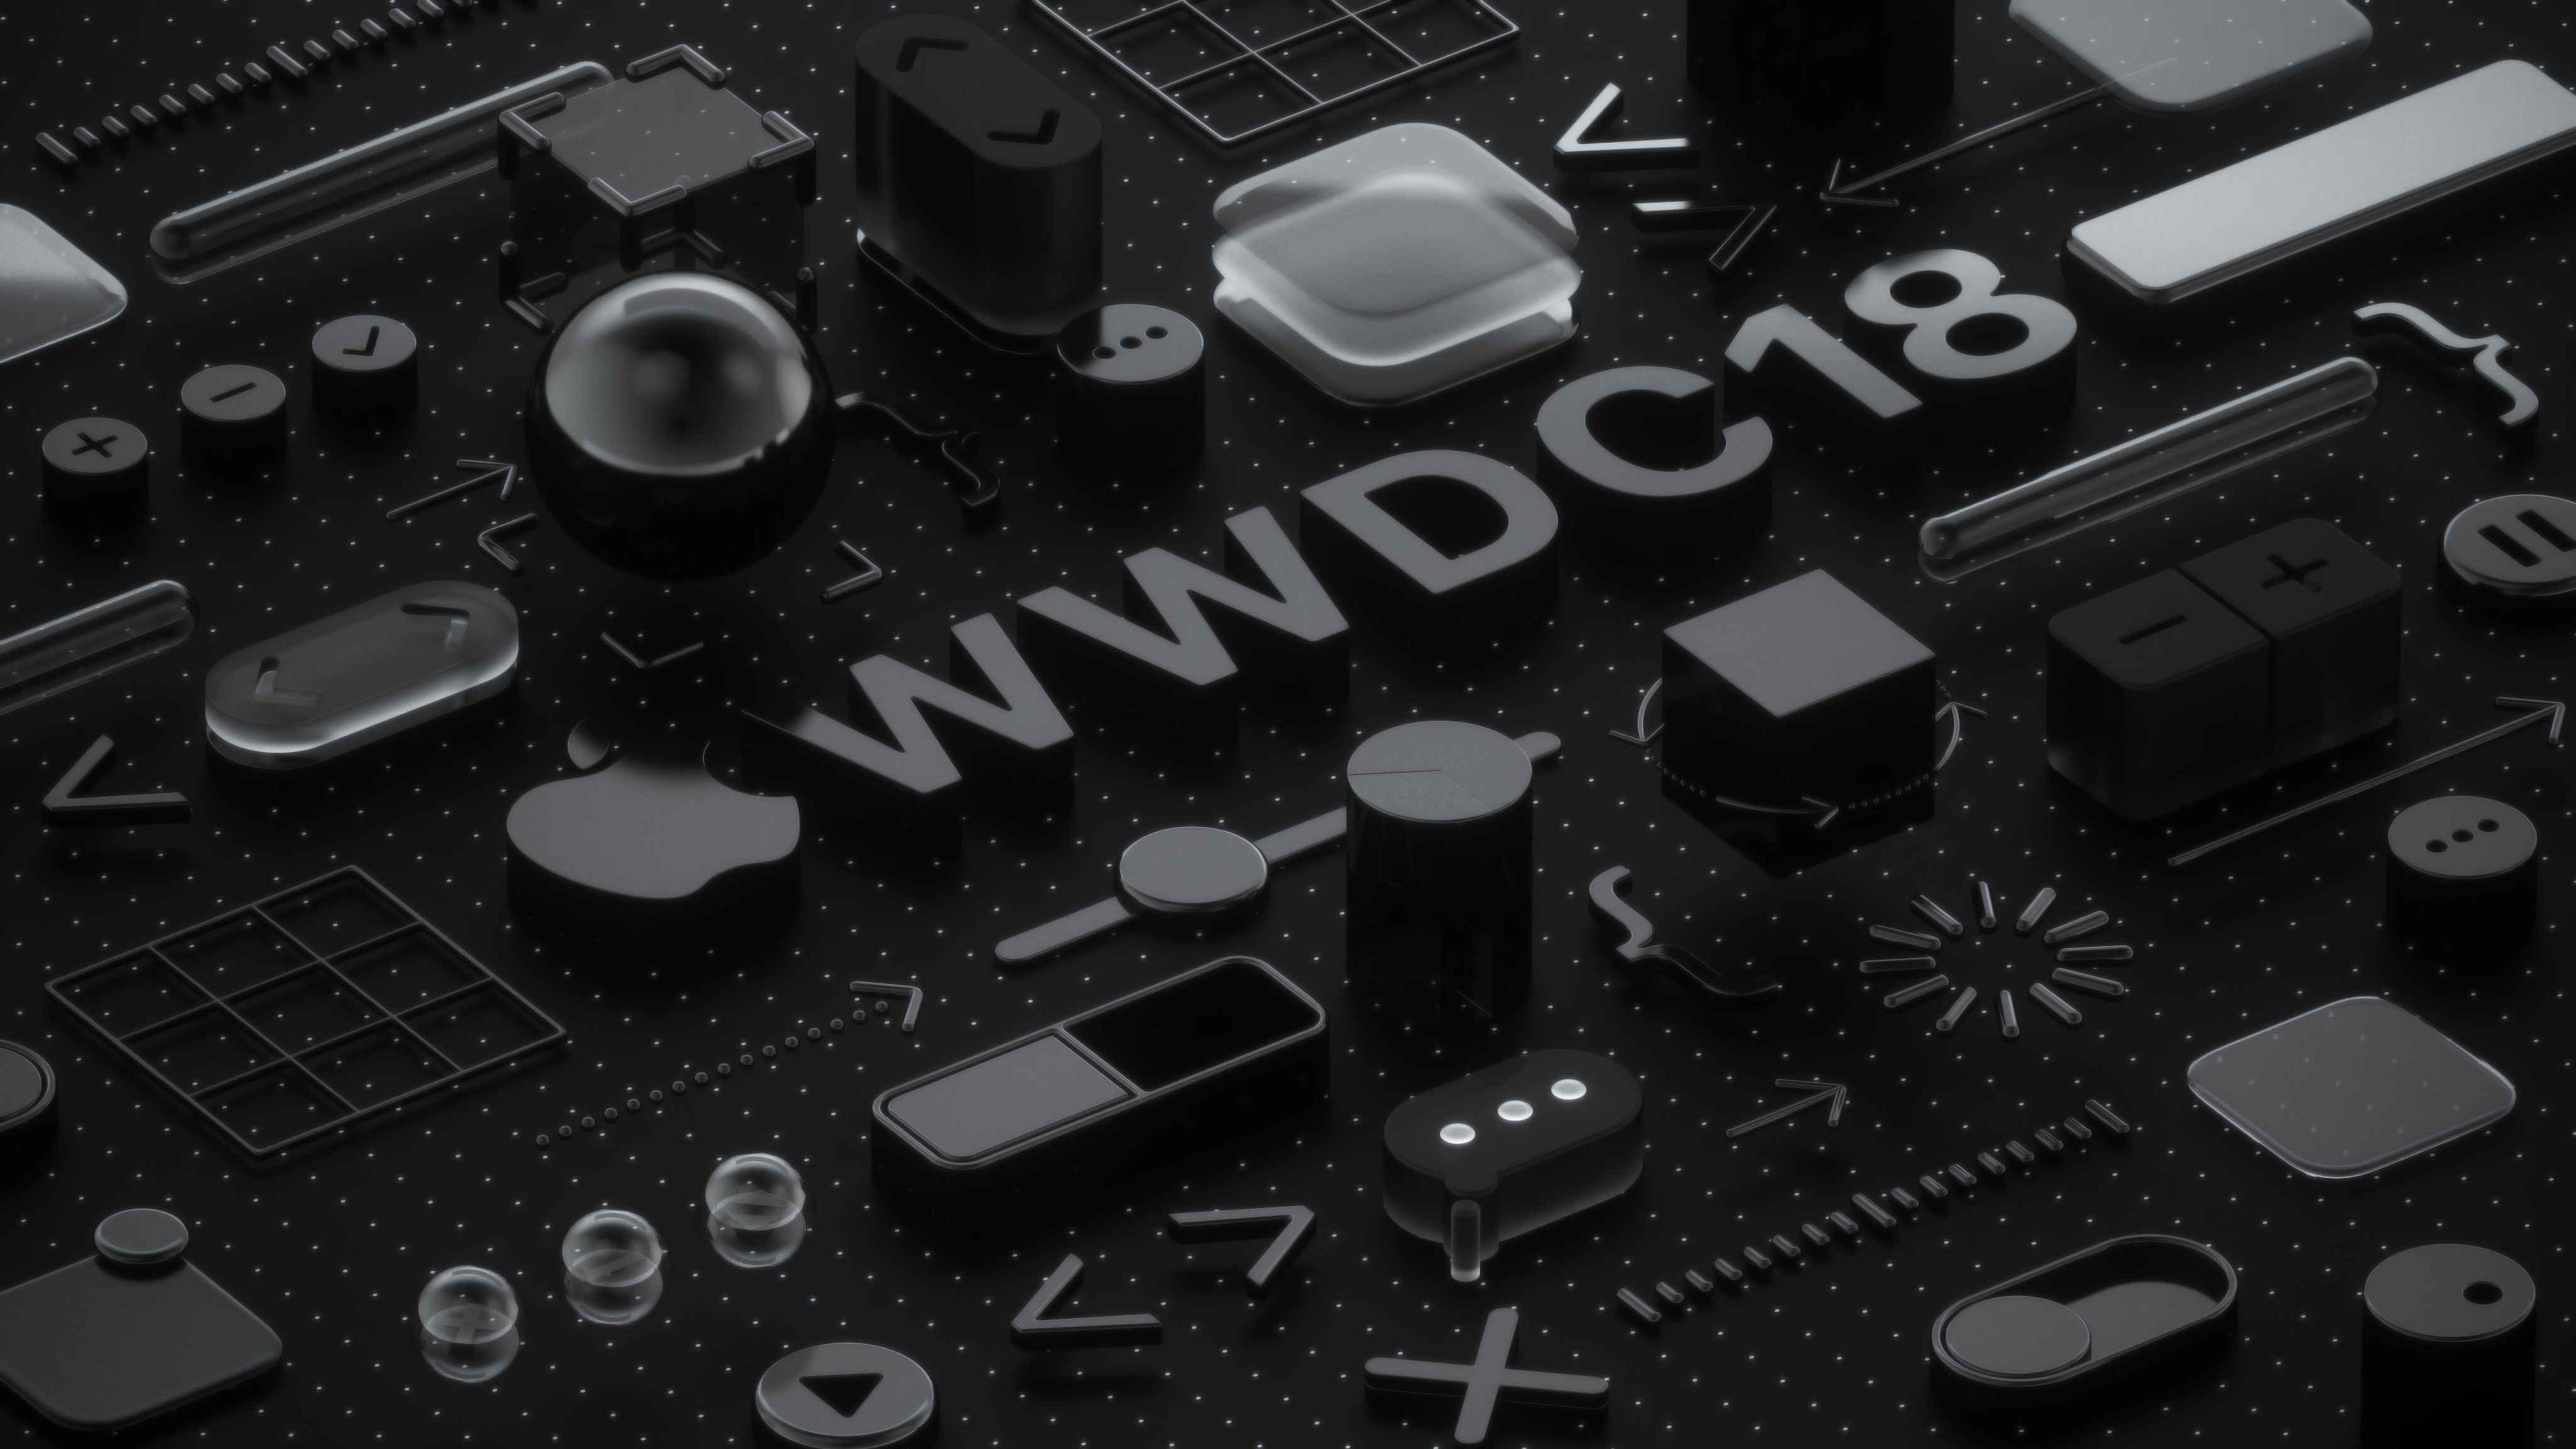 Get Ready For WWDC 2018 With These Wallpapers Optimized